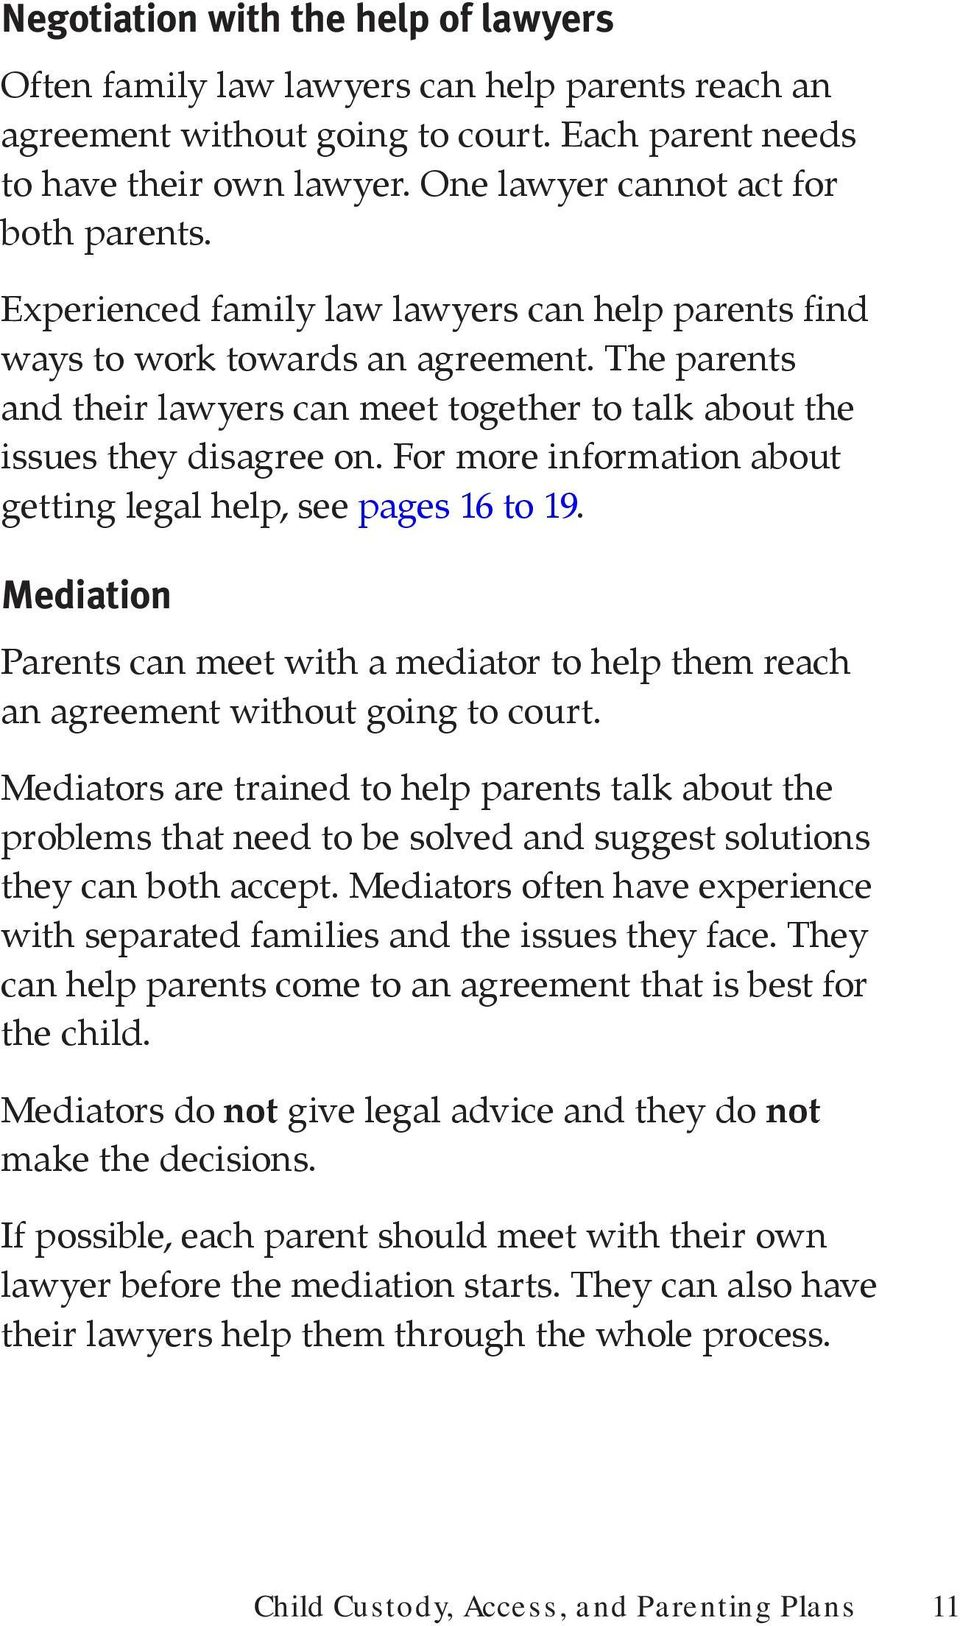 The parents and their lawyers can meet together to talk about the issues they disagree on. For more information about getting legal help, see pages 16 to 19.